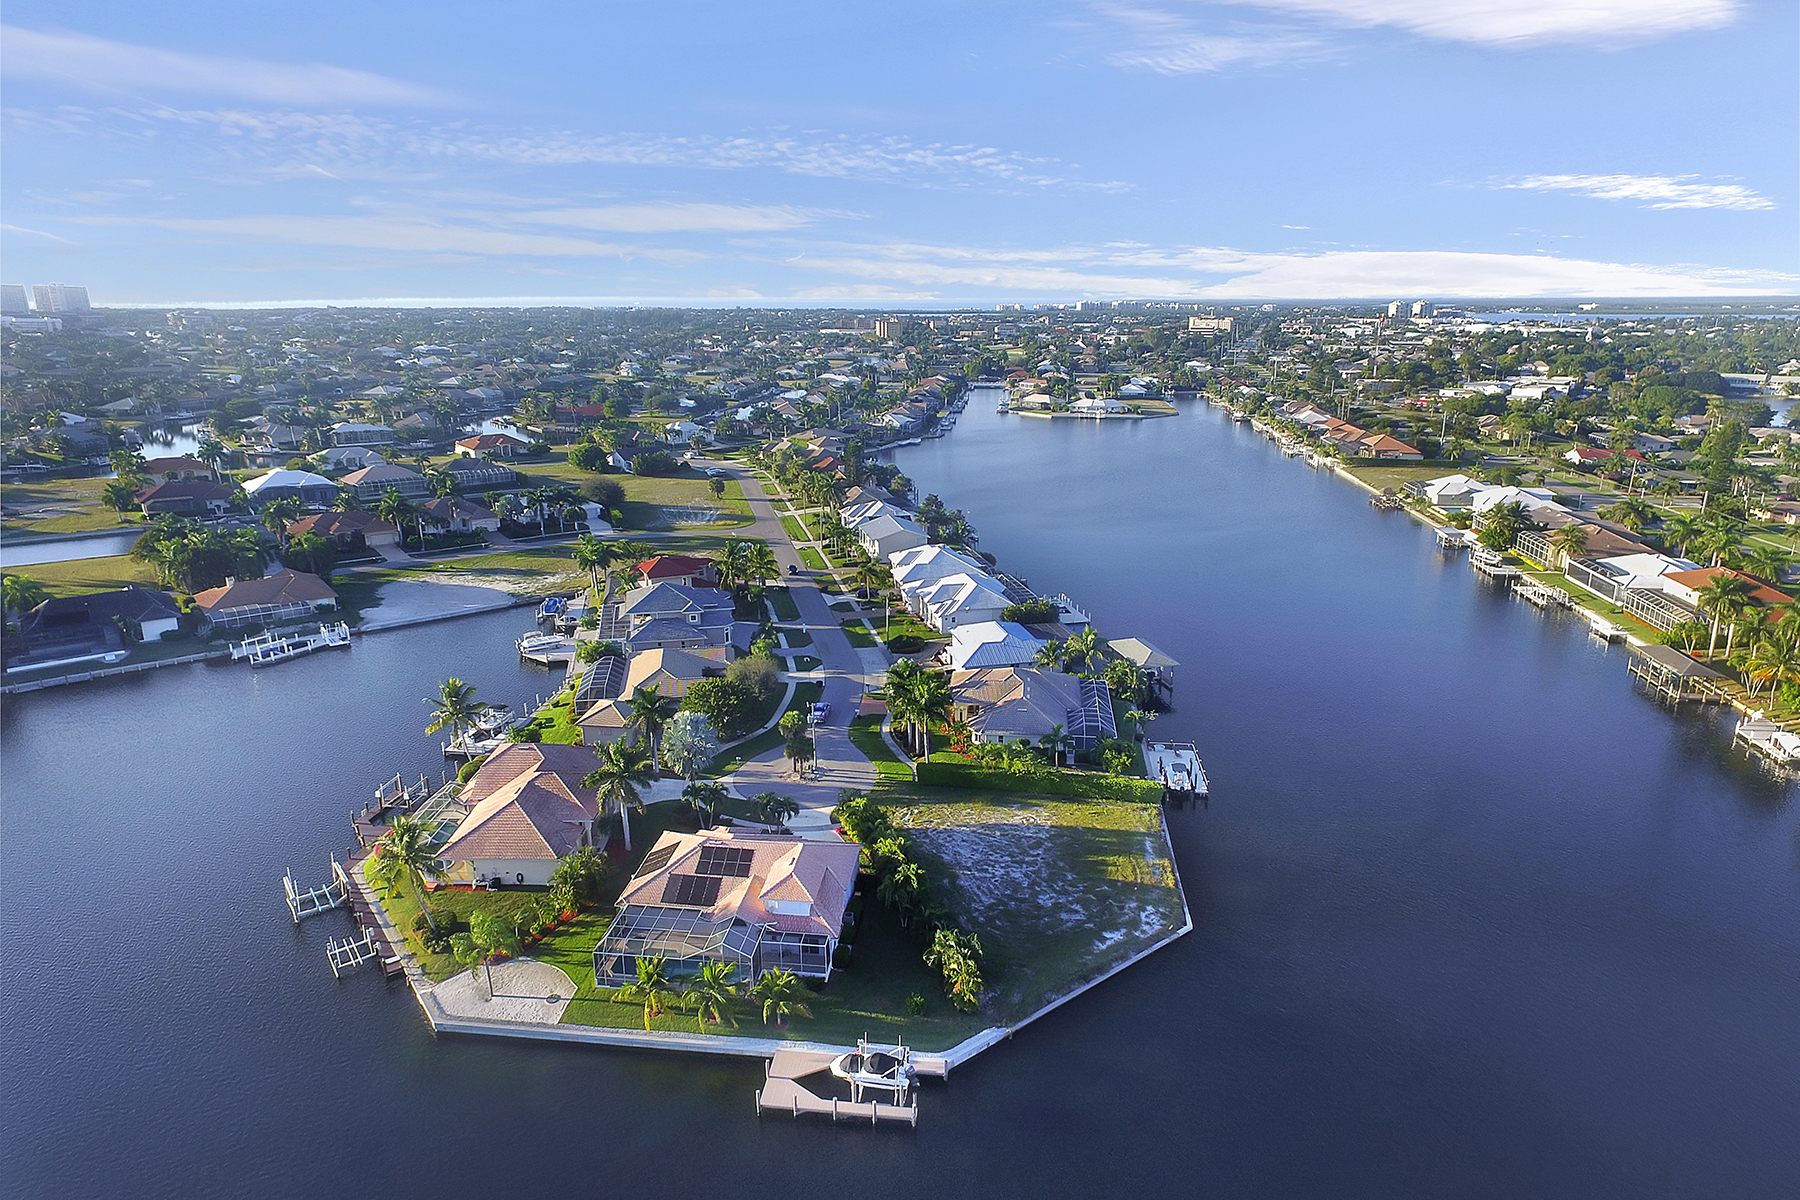 Terreno por un Venta en MARCO ISLAND 1189 Strawberry Ct Marco Island, Florida, 34145 Estados Unidos